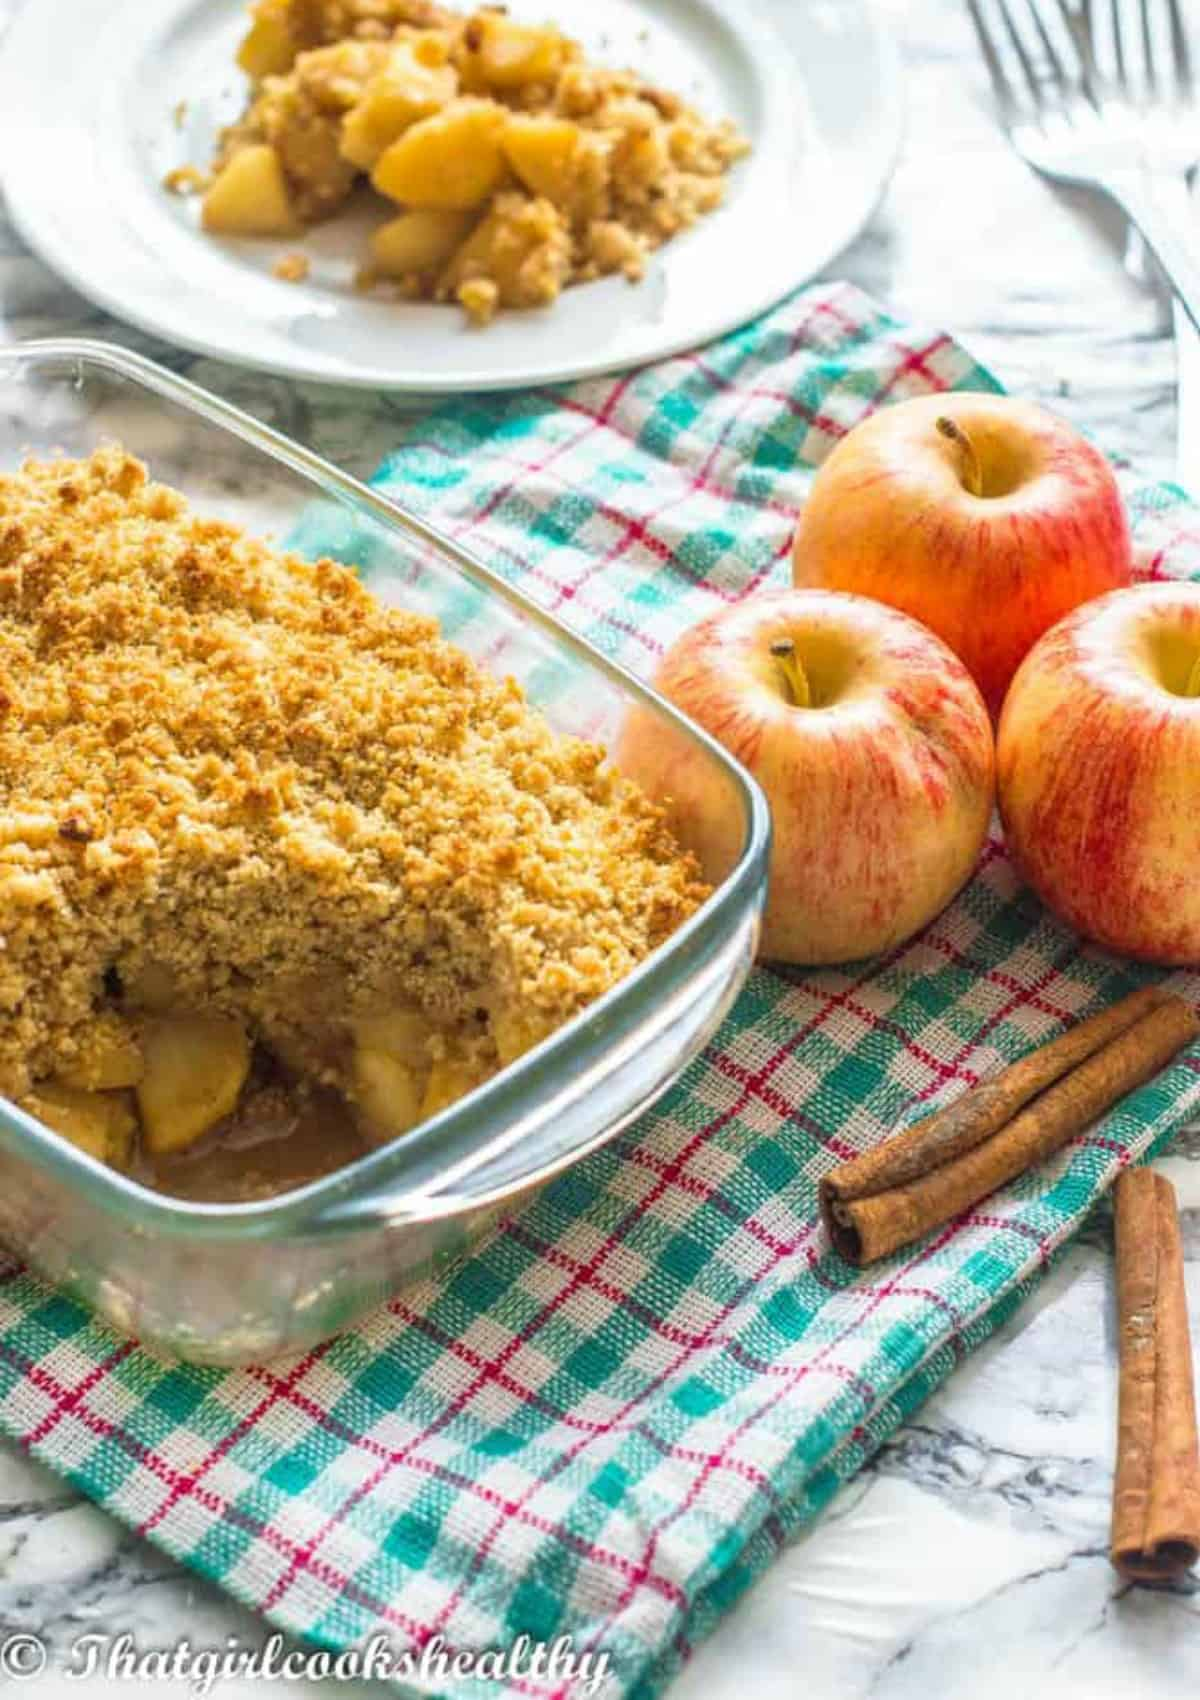 portion of crumble on a side dish